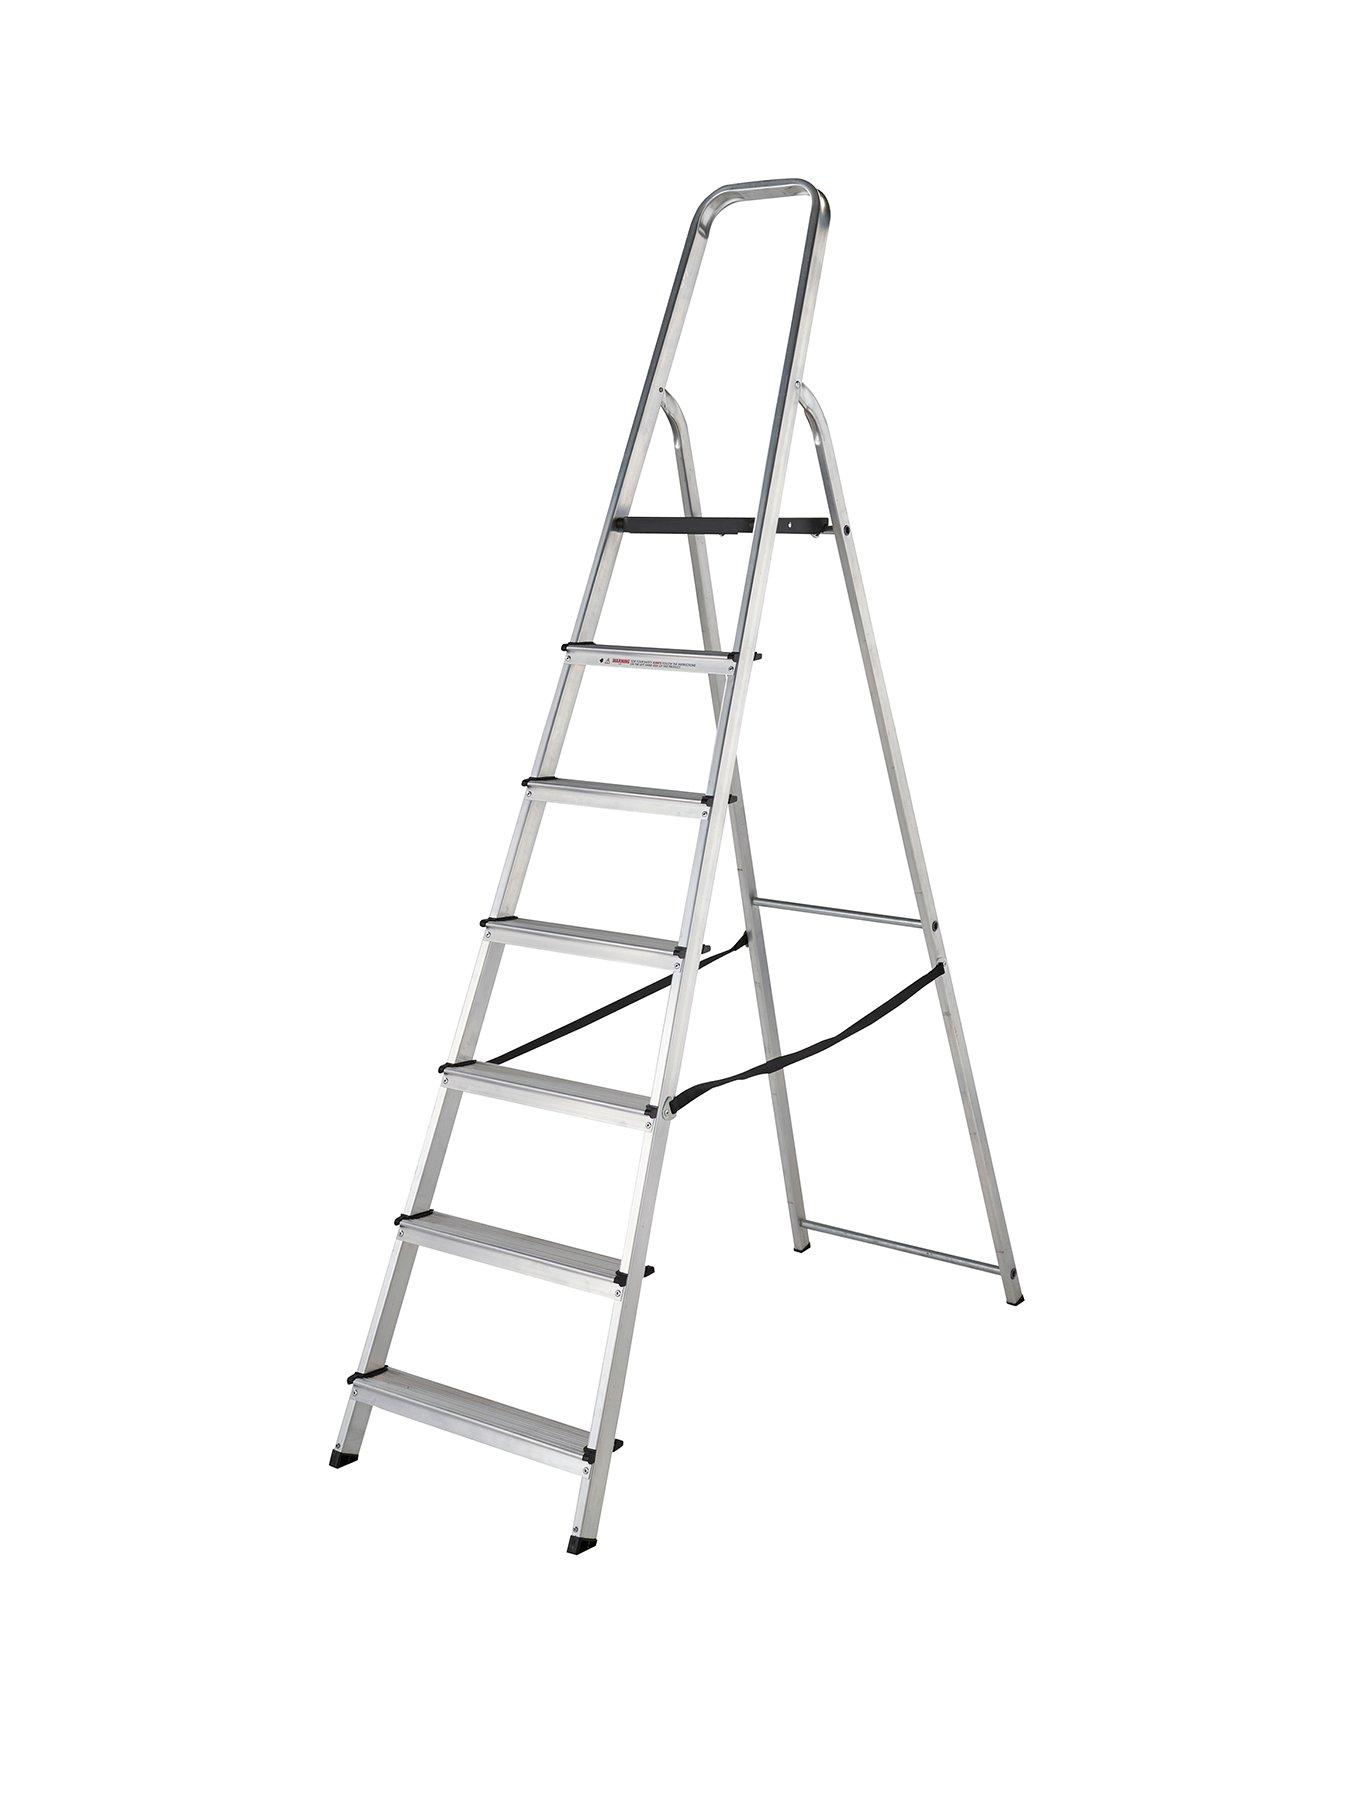 PACK OF 10-61MM X 23MM REPLACEMENT LADDER STEP LADDER FEET